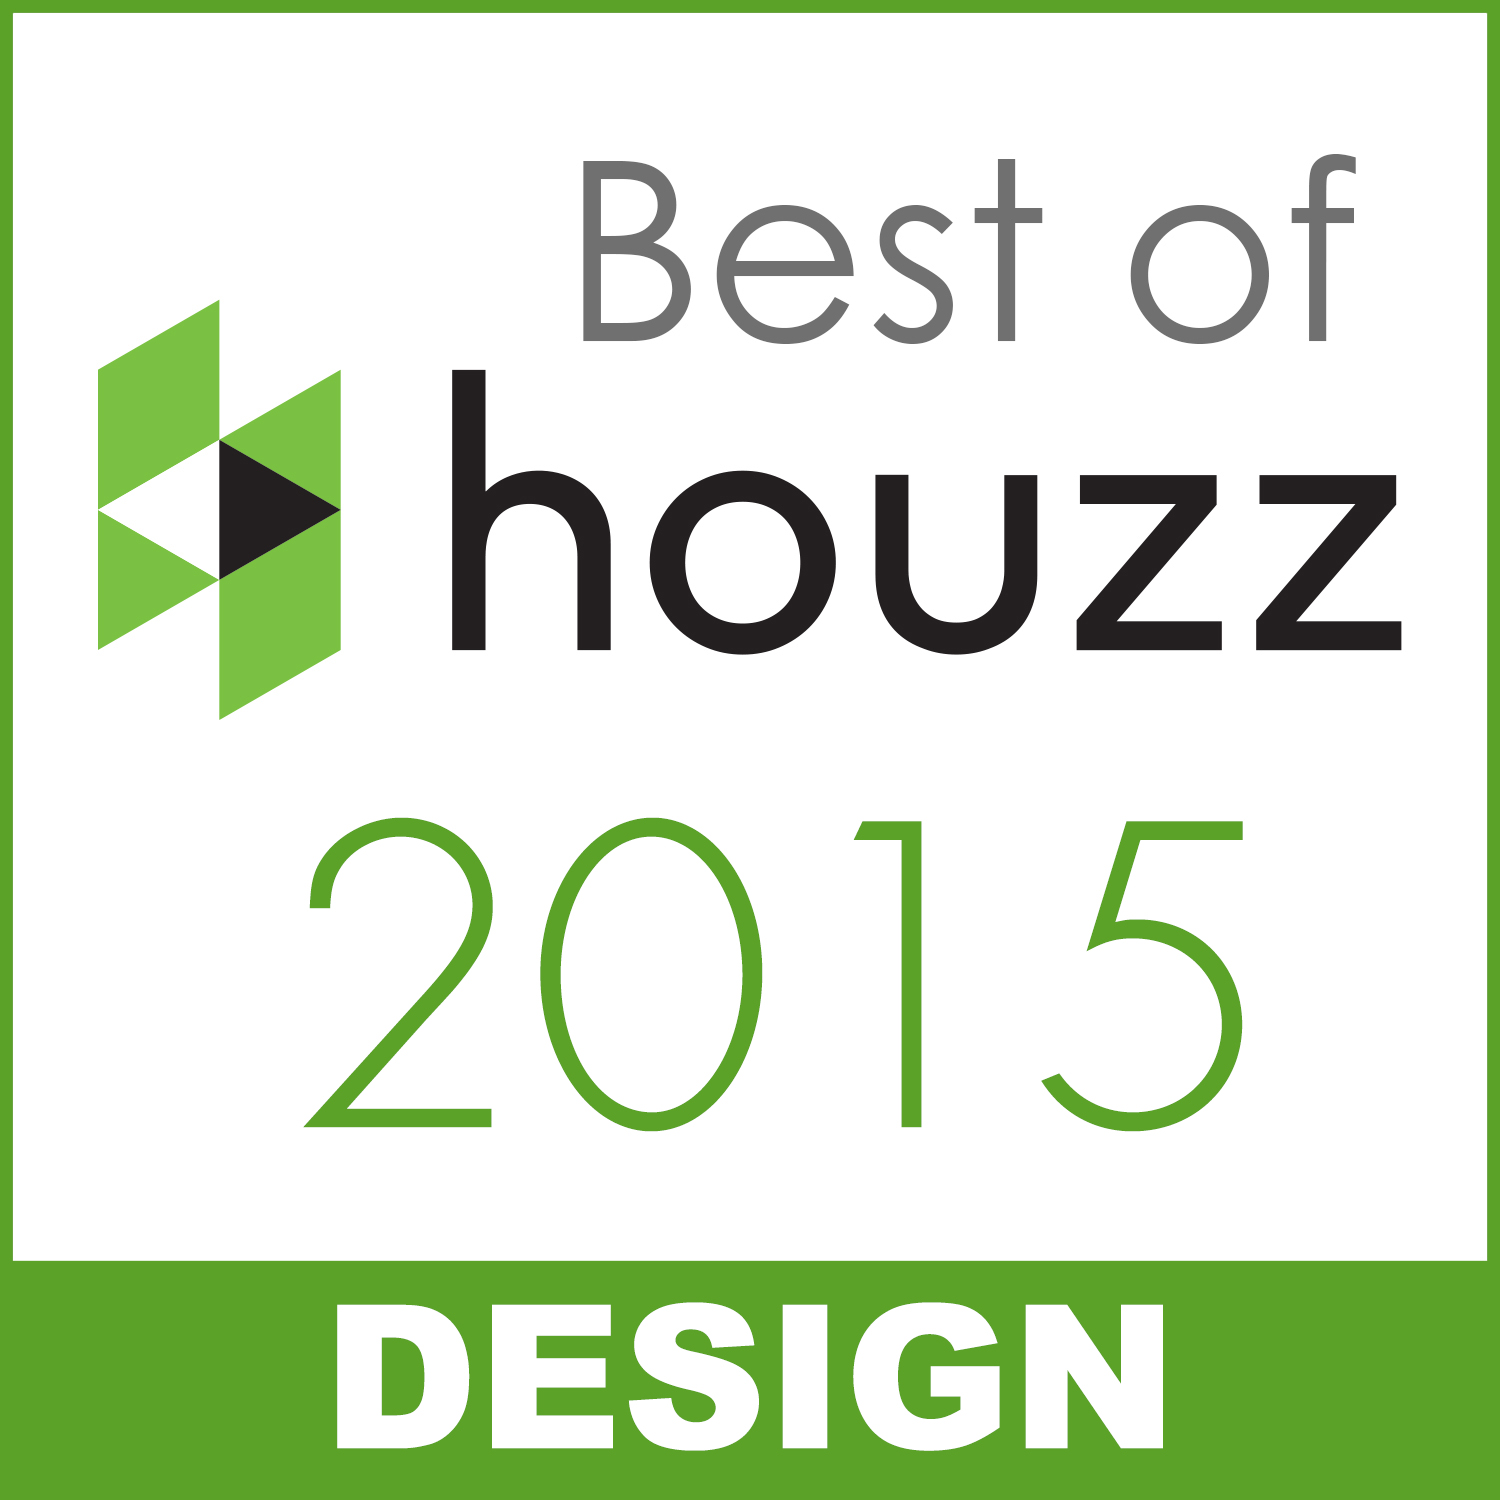 houzz 2015 design.jpg